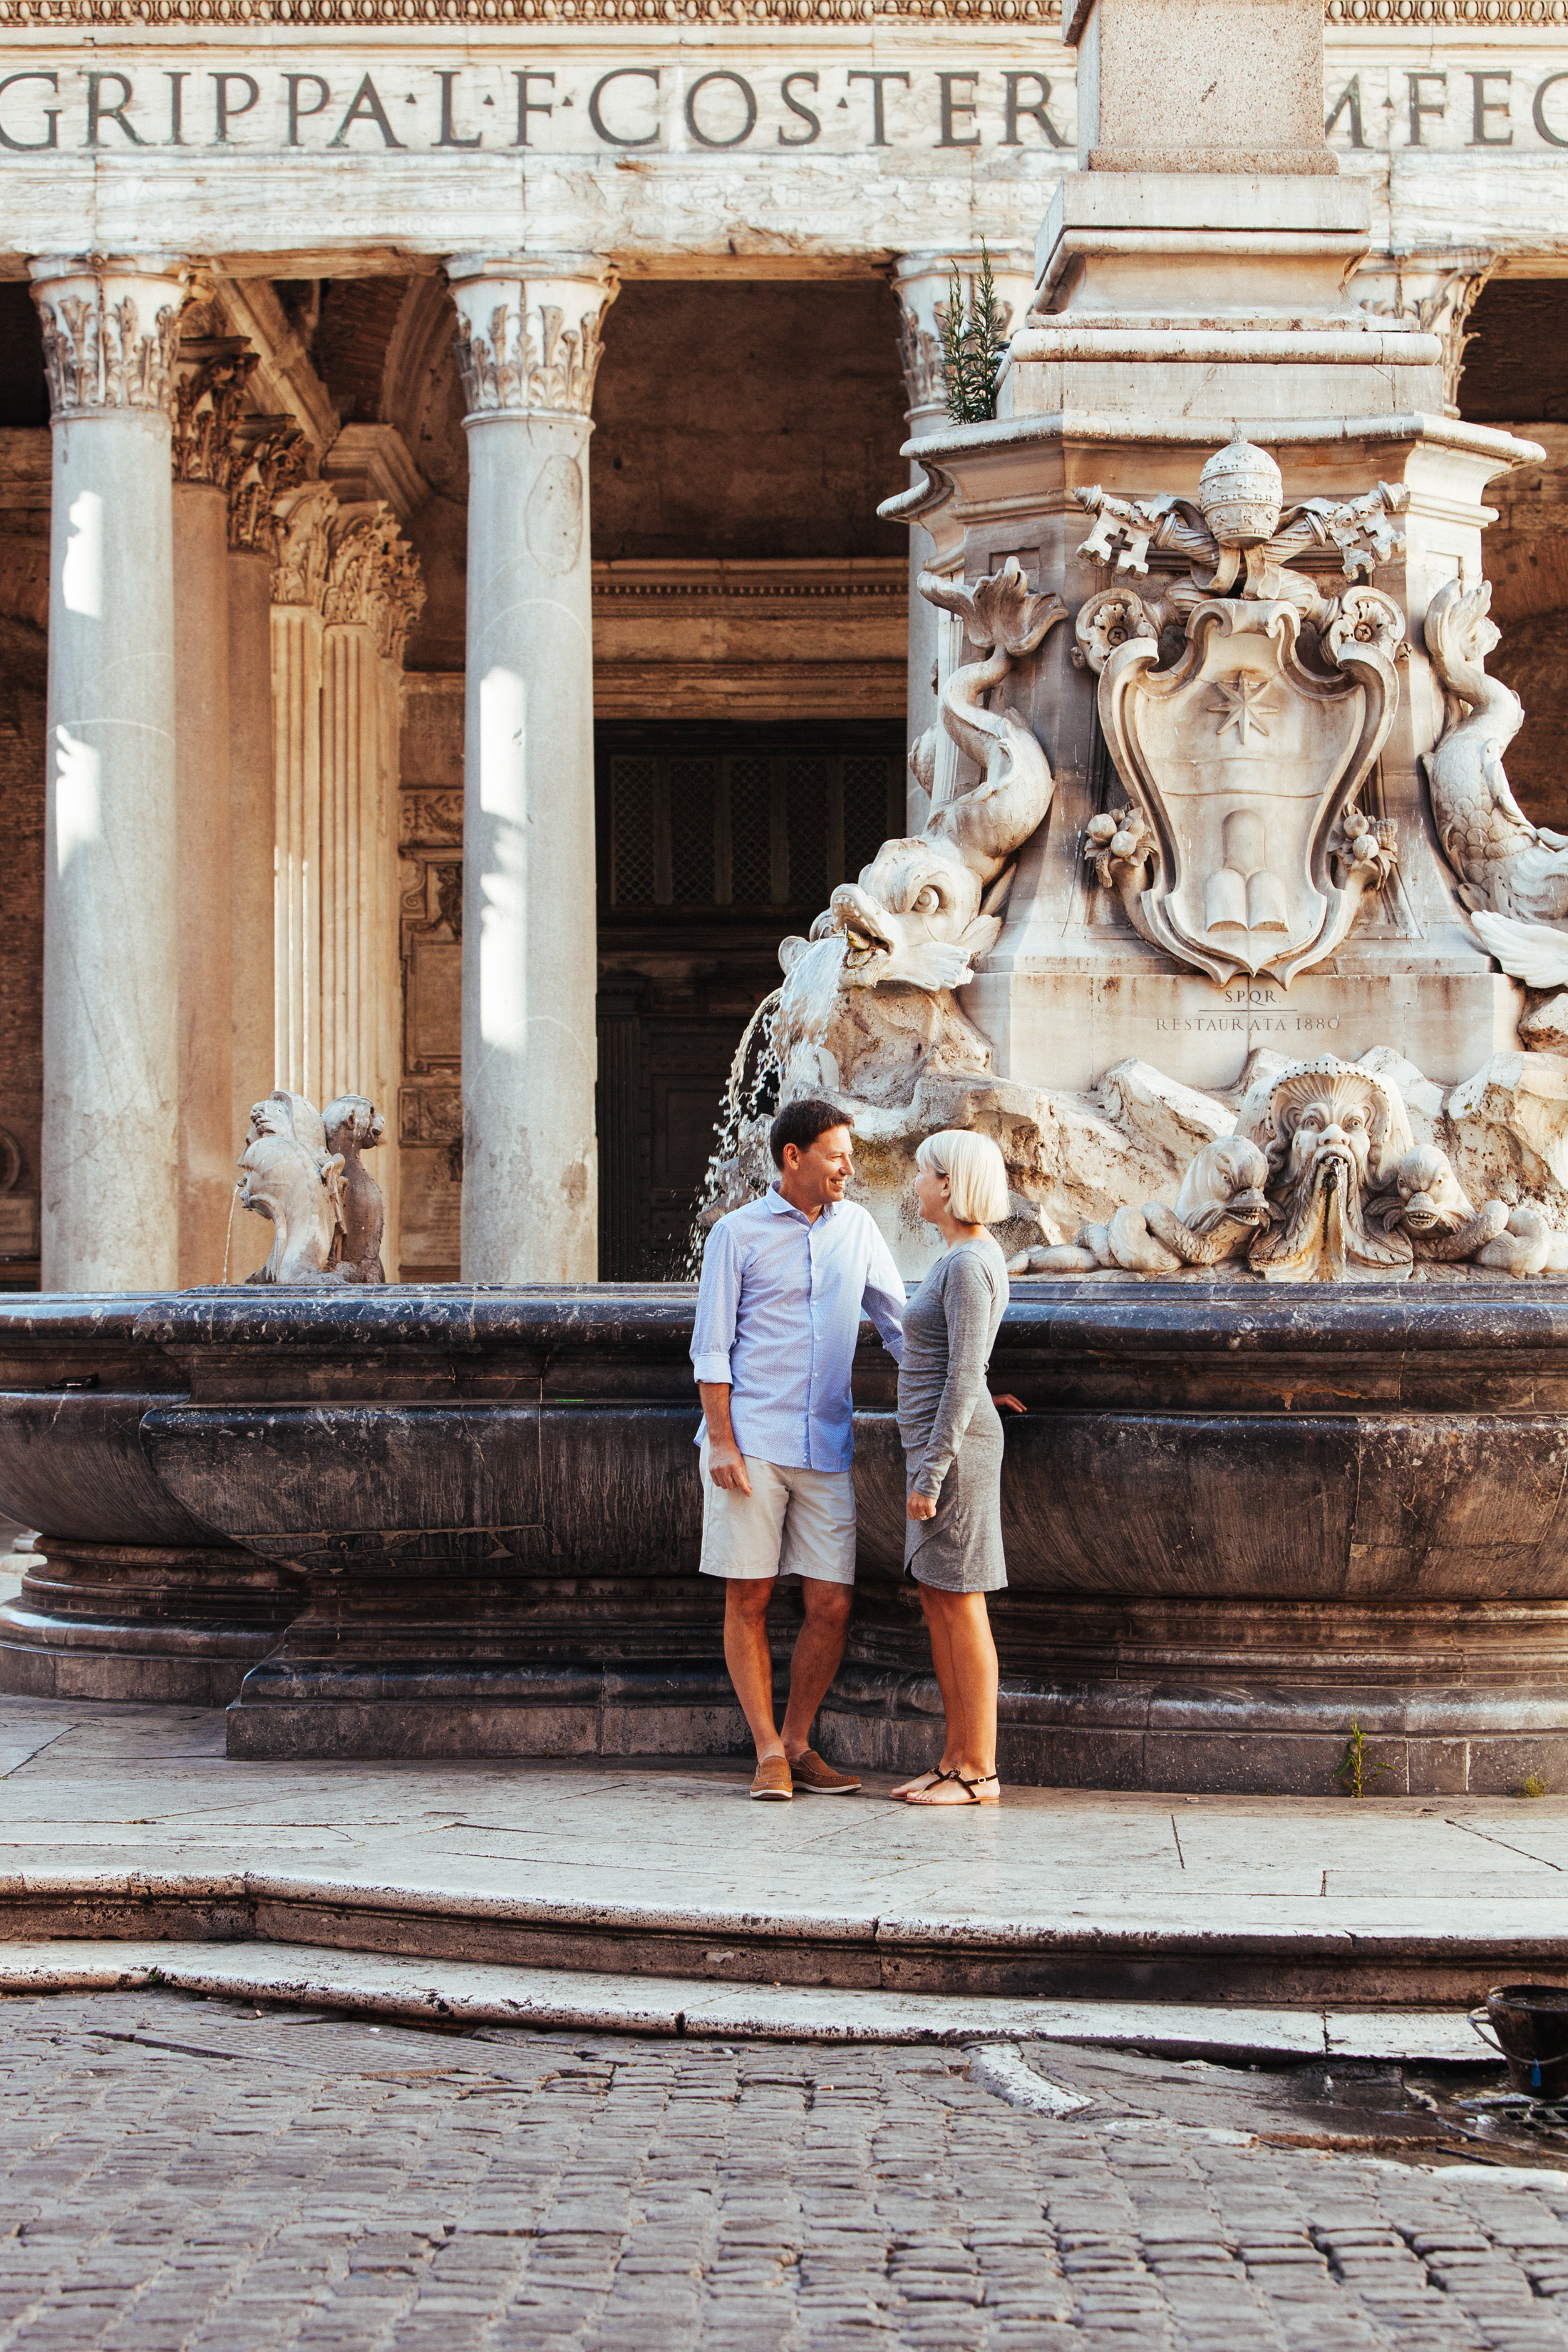 Flytographer:  Guido in Rome